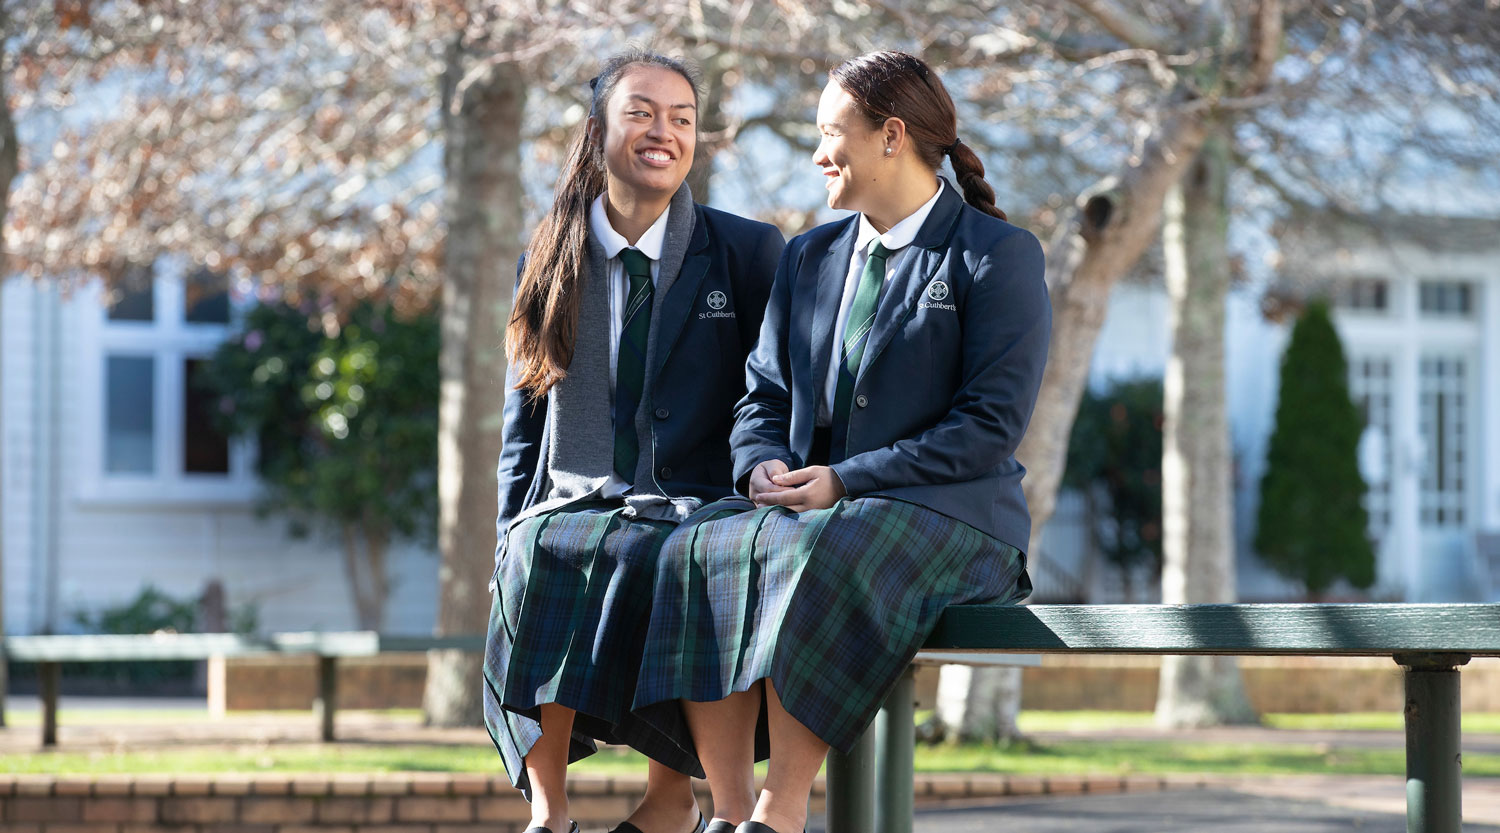 Two senior girls sitting on bench wearing St Cuthbert's uniform